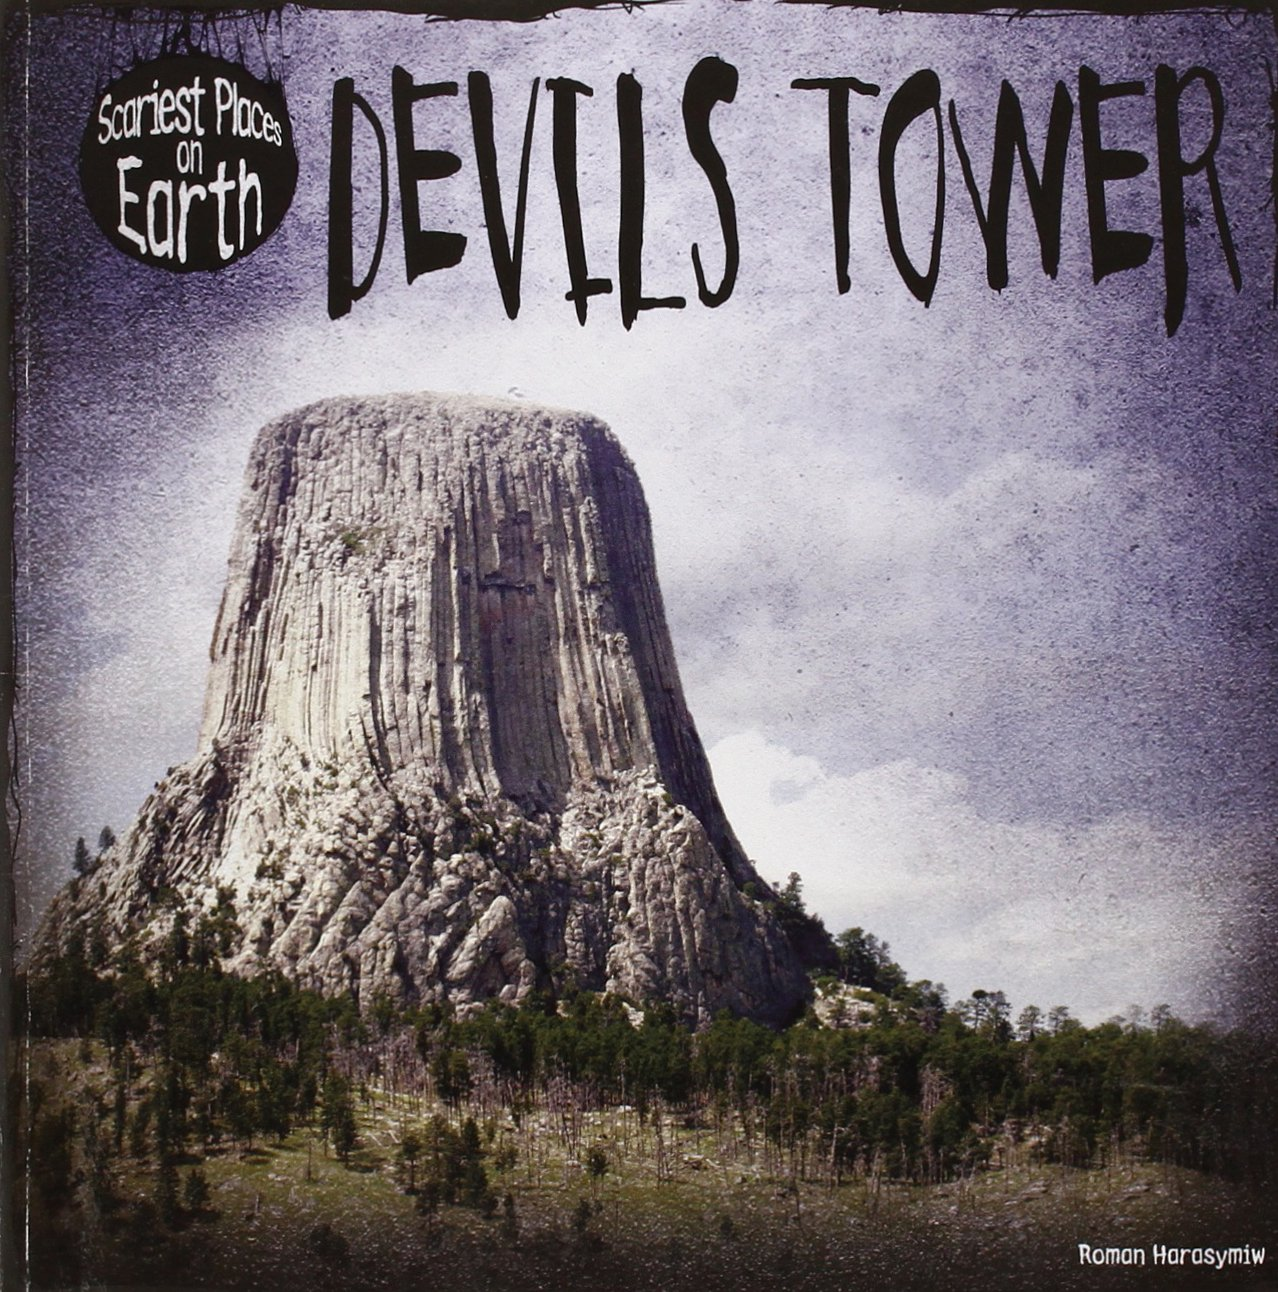 amazon devils tower scariest places on earth roman harasymiw